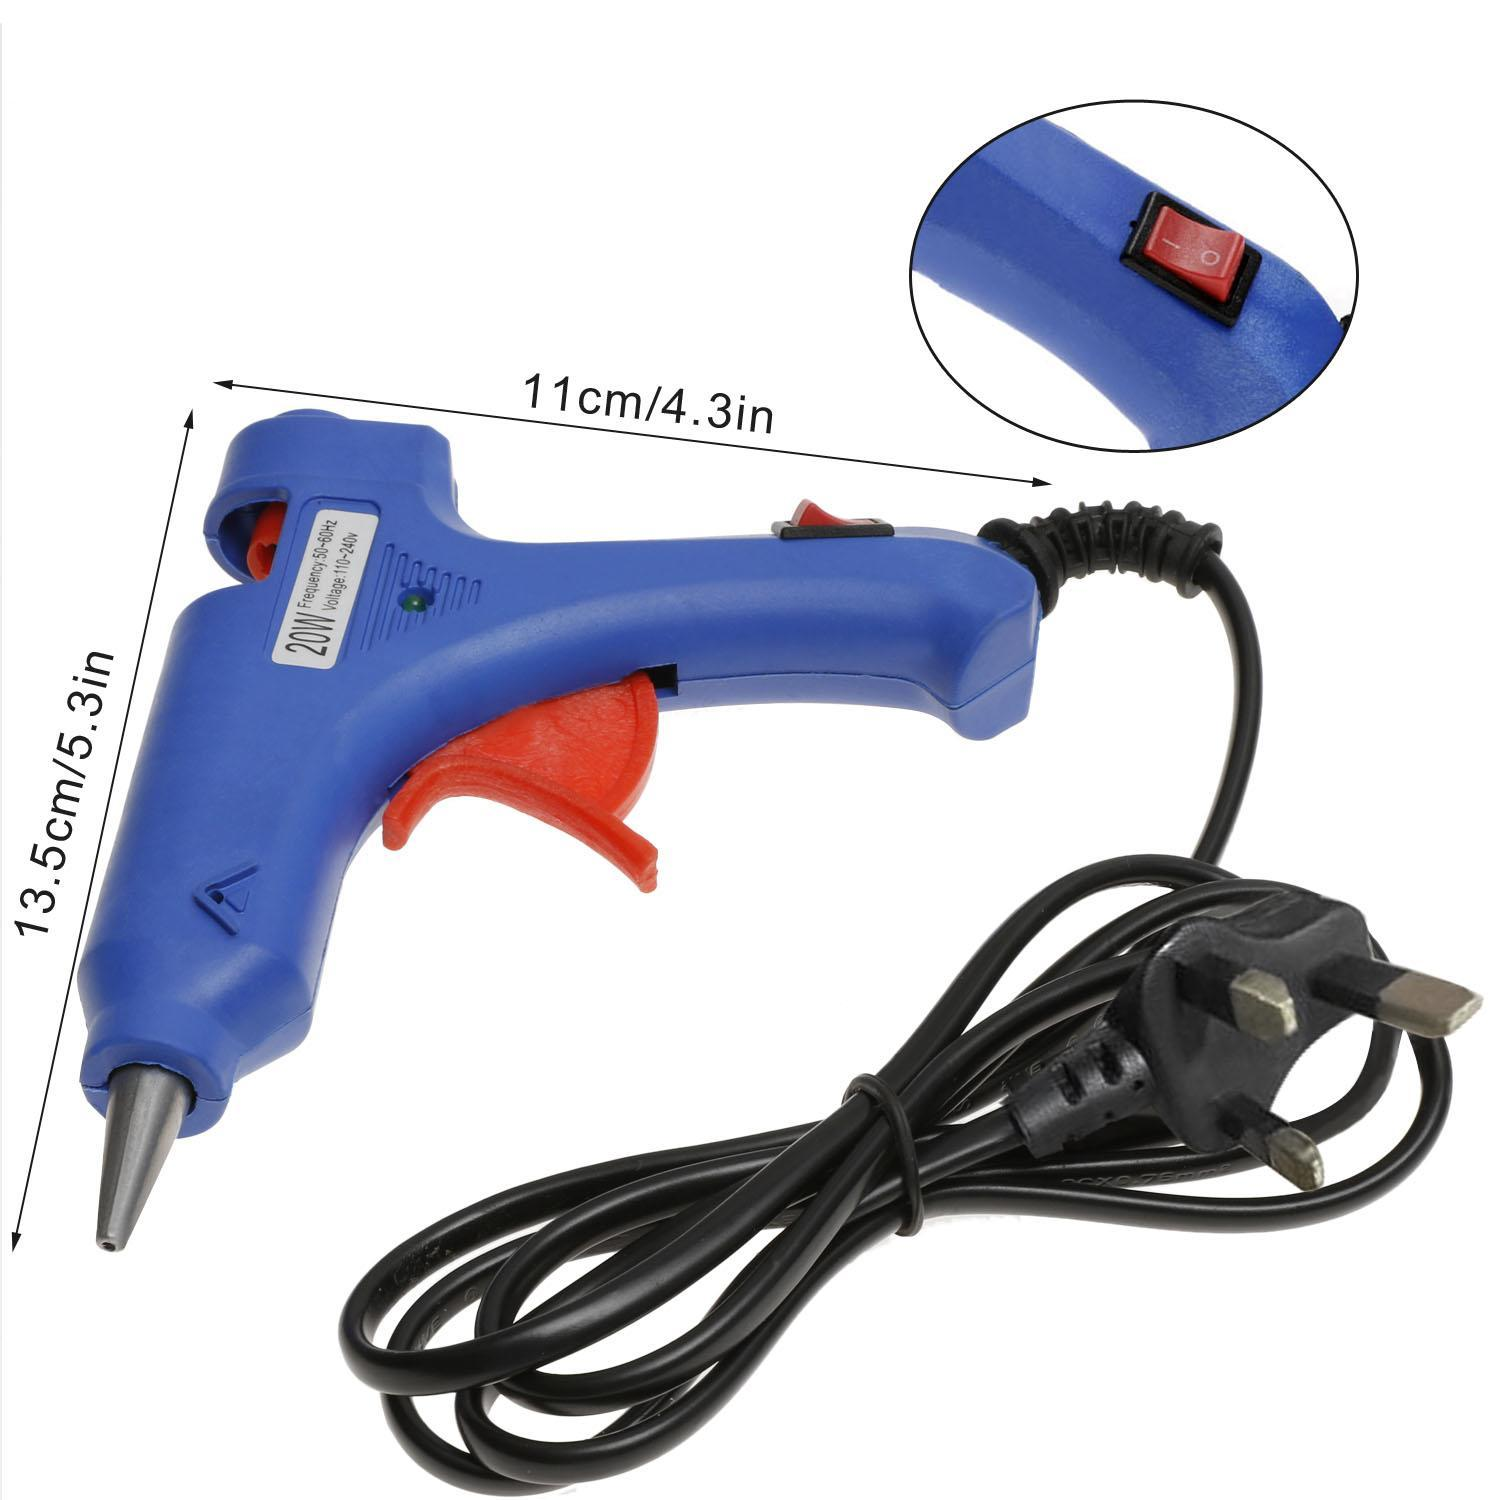 Shopifystore 20W Mini Electric Hot Melt Mini Glue Gun Melting Glue Gun Blue( US Plug) SPTE